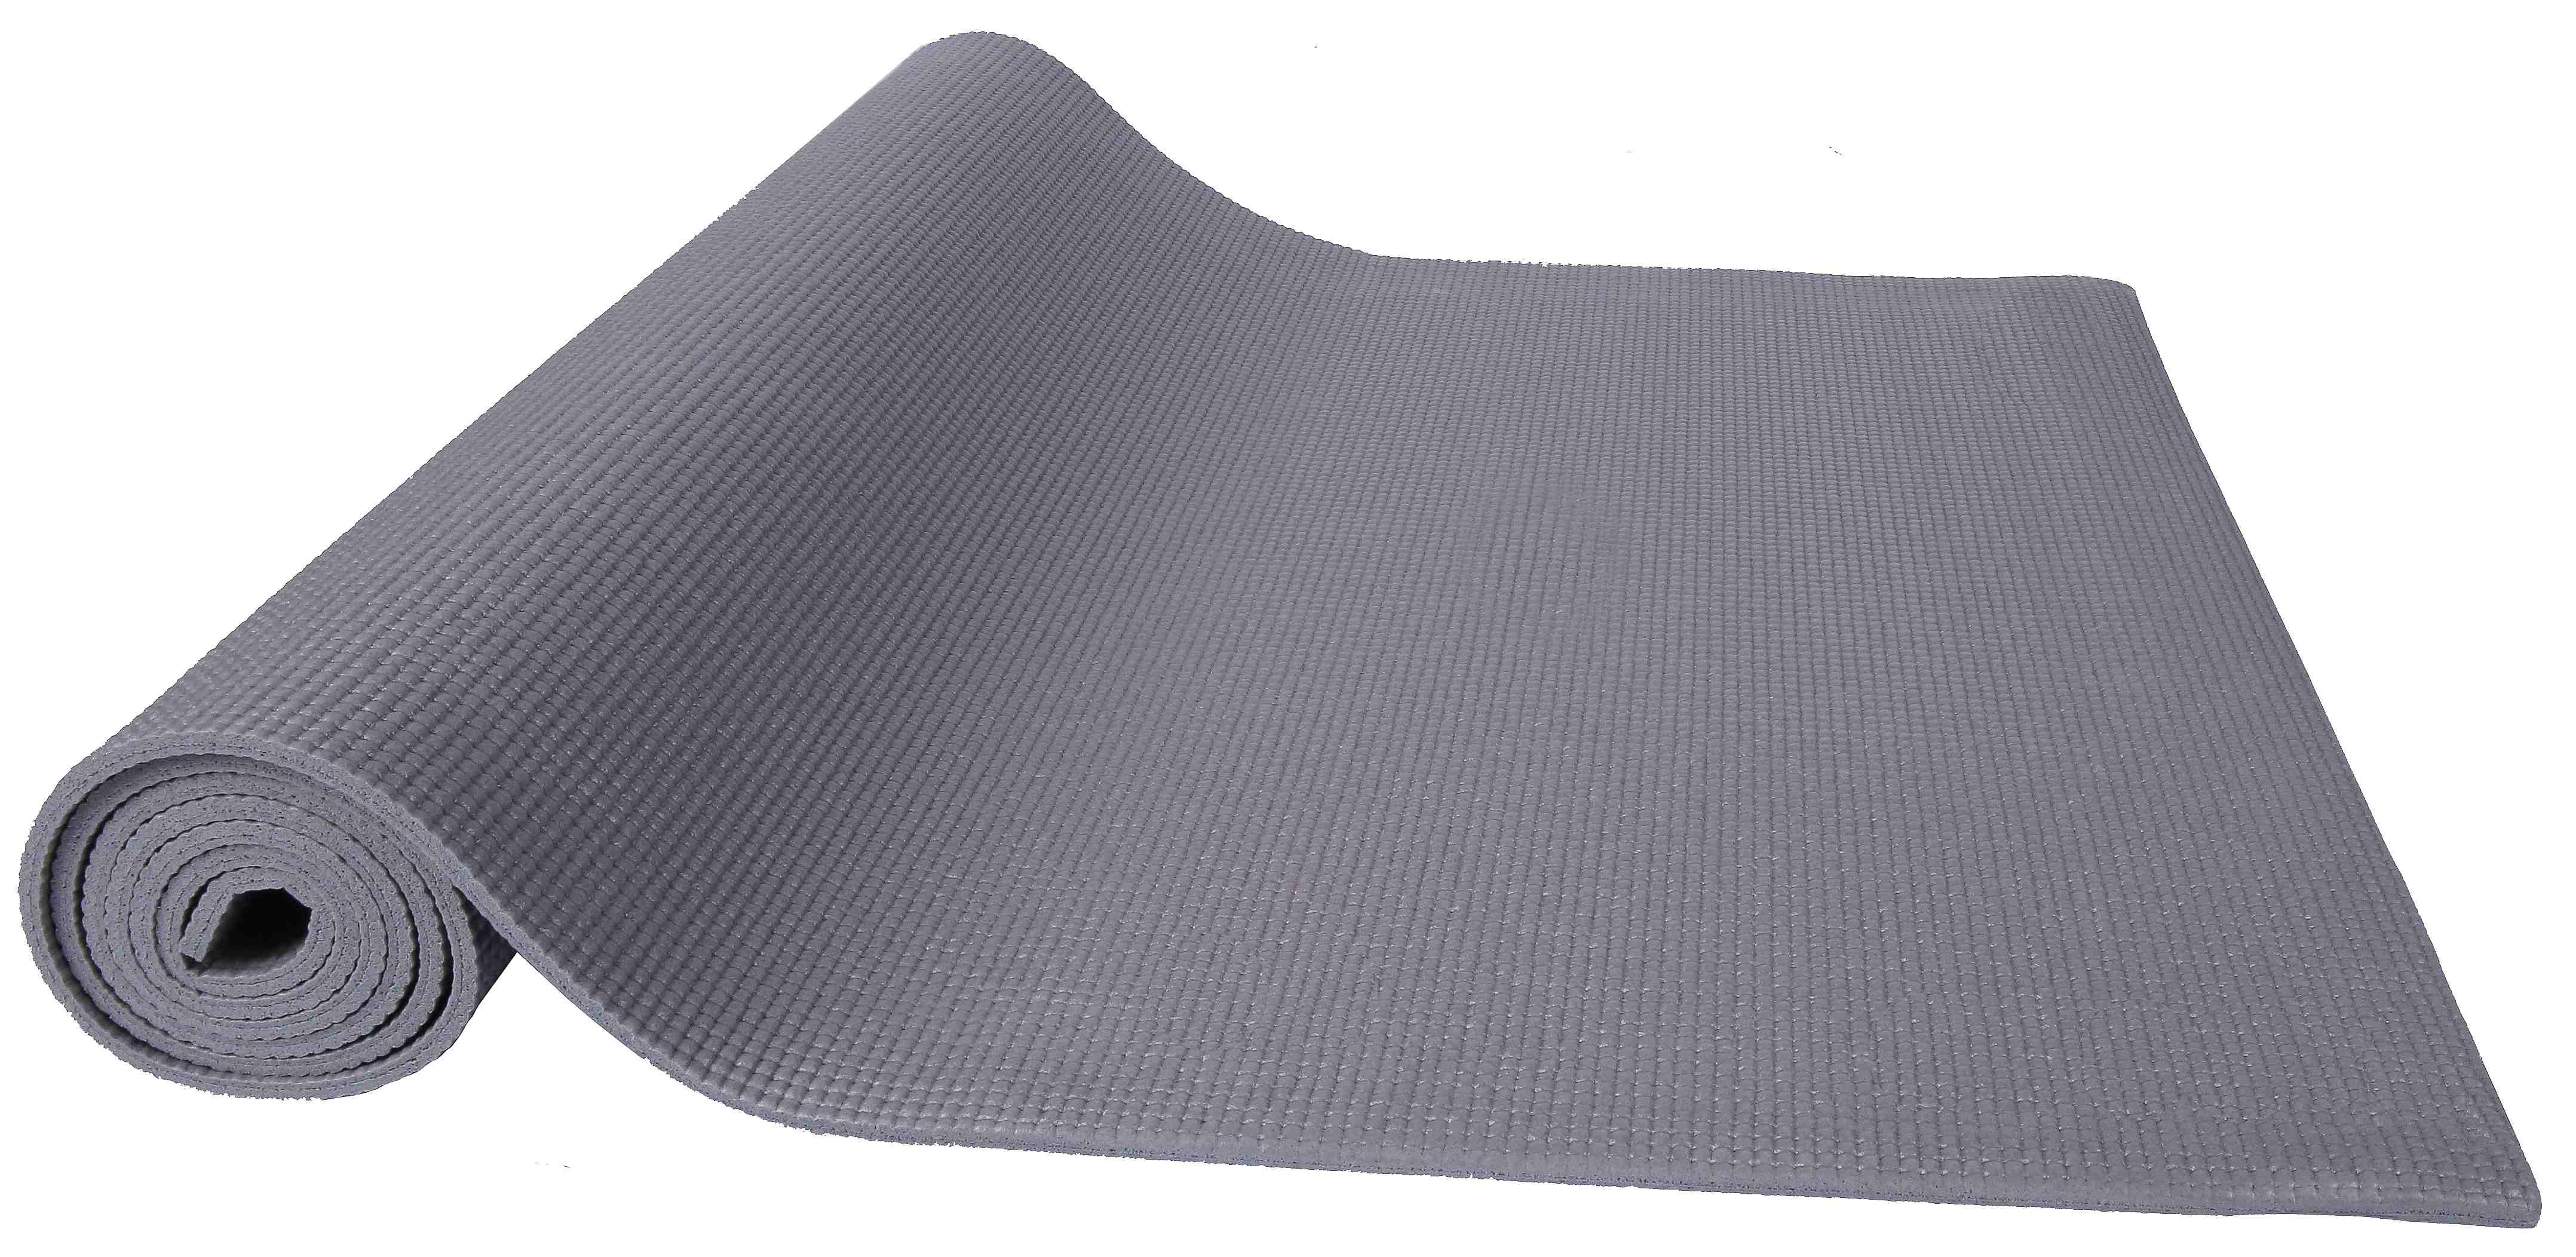 [US Direct] Original BalanceFrom GoYoga All Purpose High Density Non-Slip Exercise Yoga Mat with Carrying Strap, Blue Gray